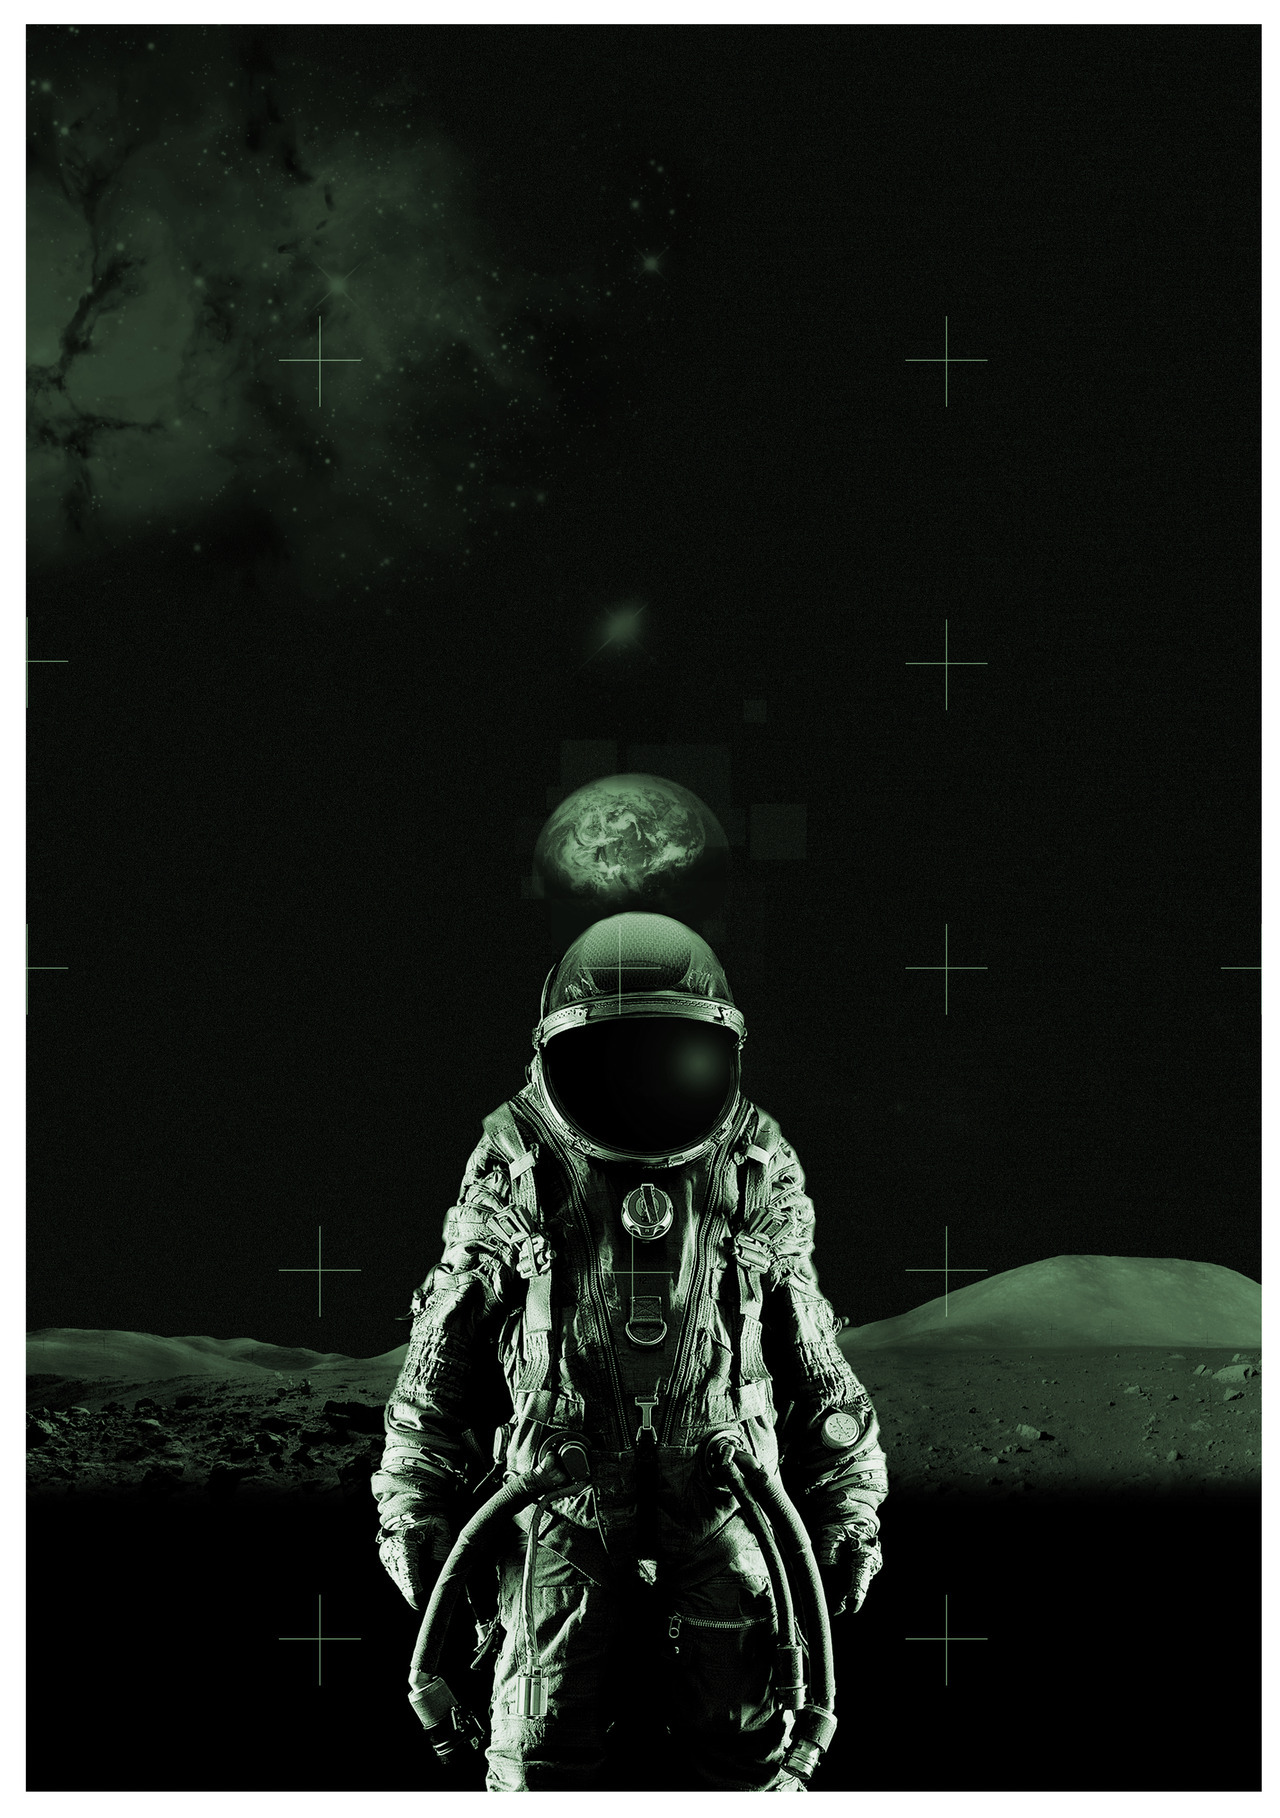 Re-edited version of that spaceman picture I made a while back,Its a lot cleaner now Sorry for the lack of posting :( I made a new blog for my art if any of you guys want to follow you can find me here -Sean